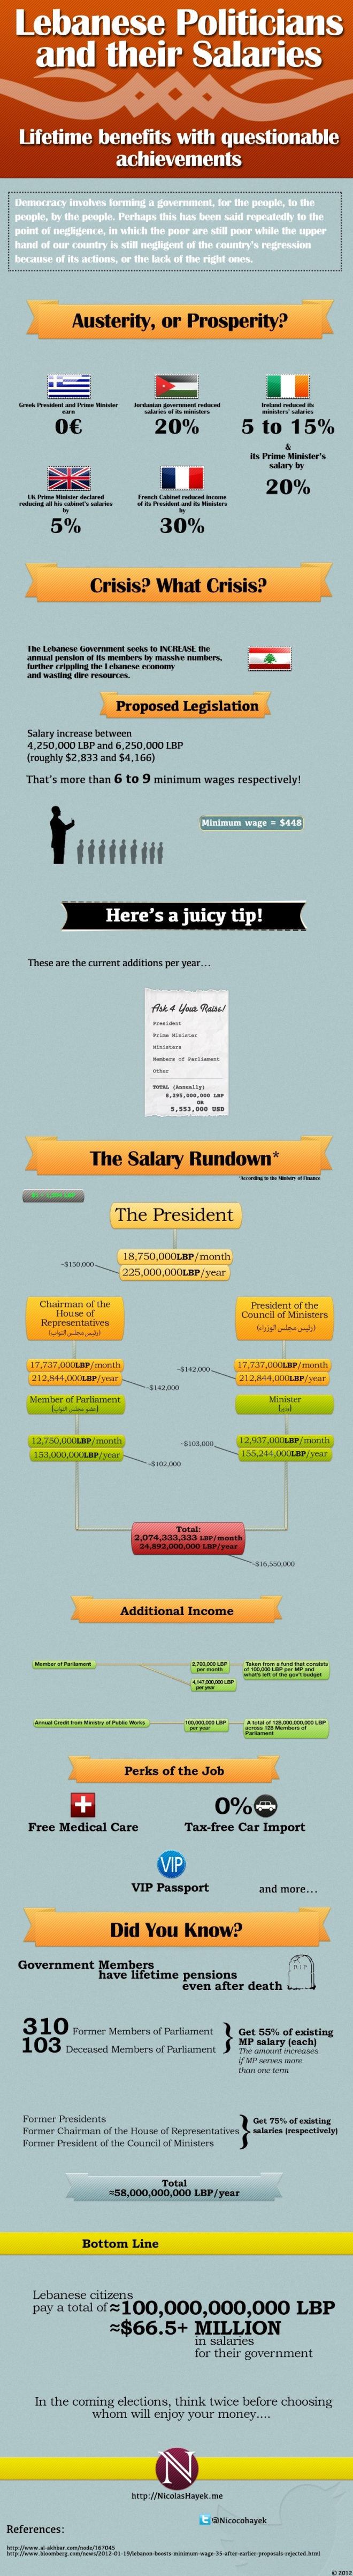 Lebanese Politicians and their Salaries